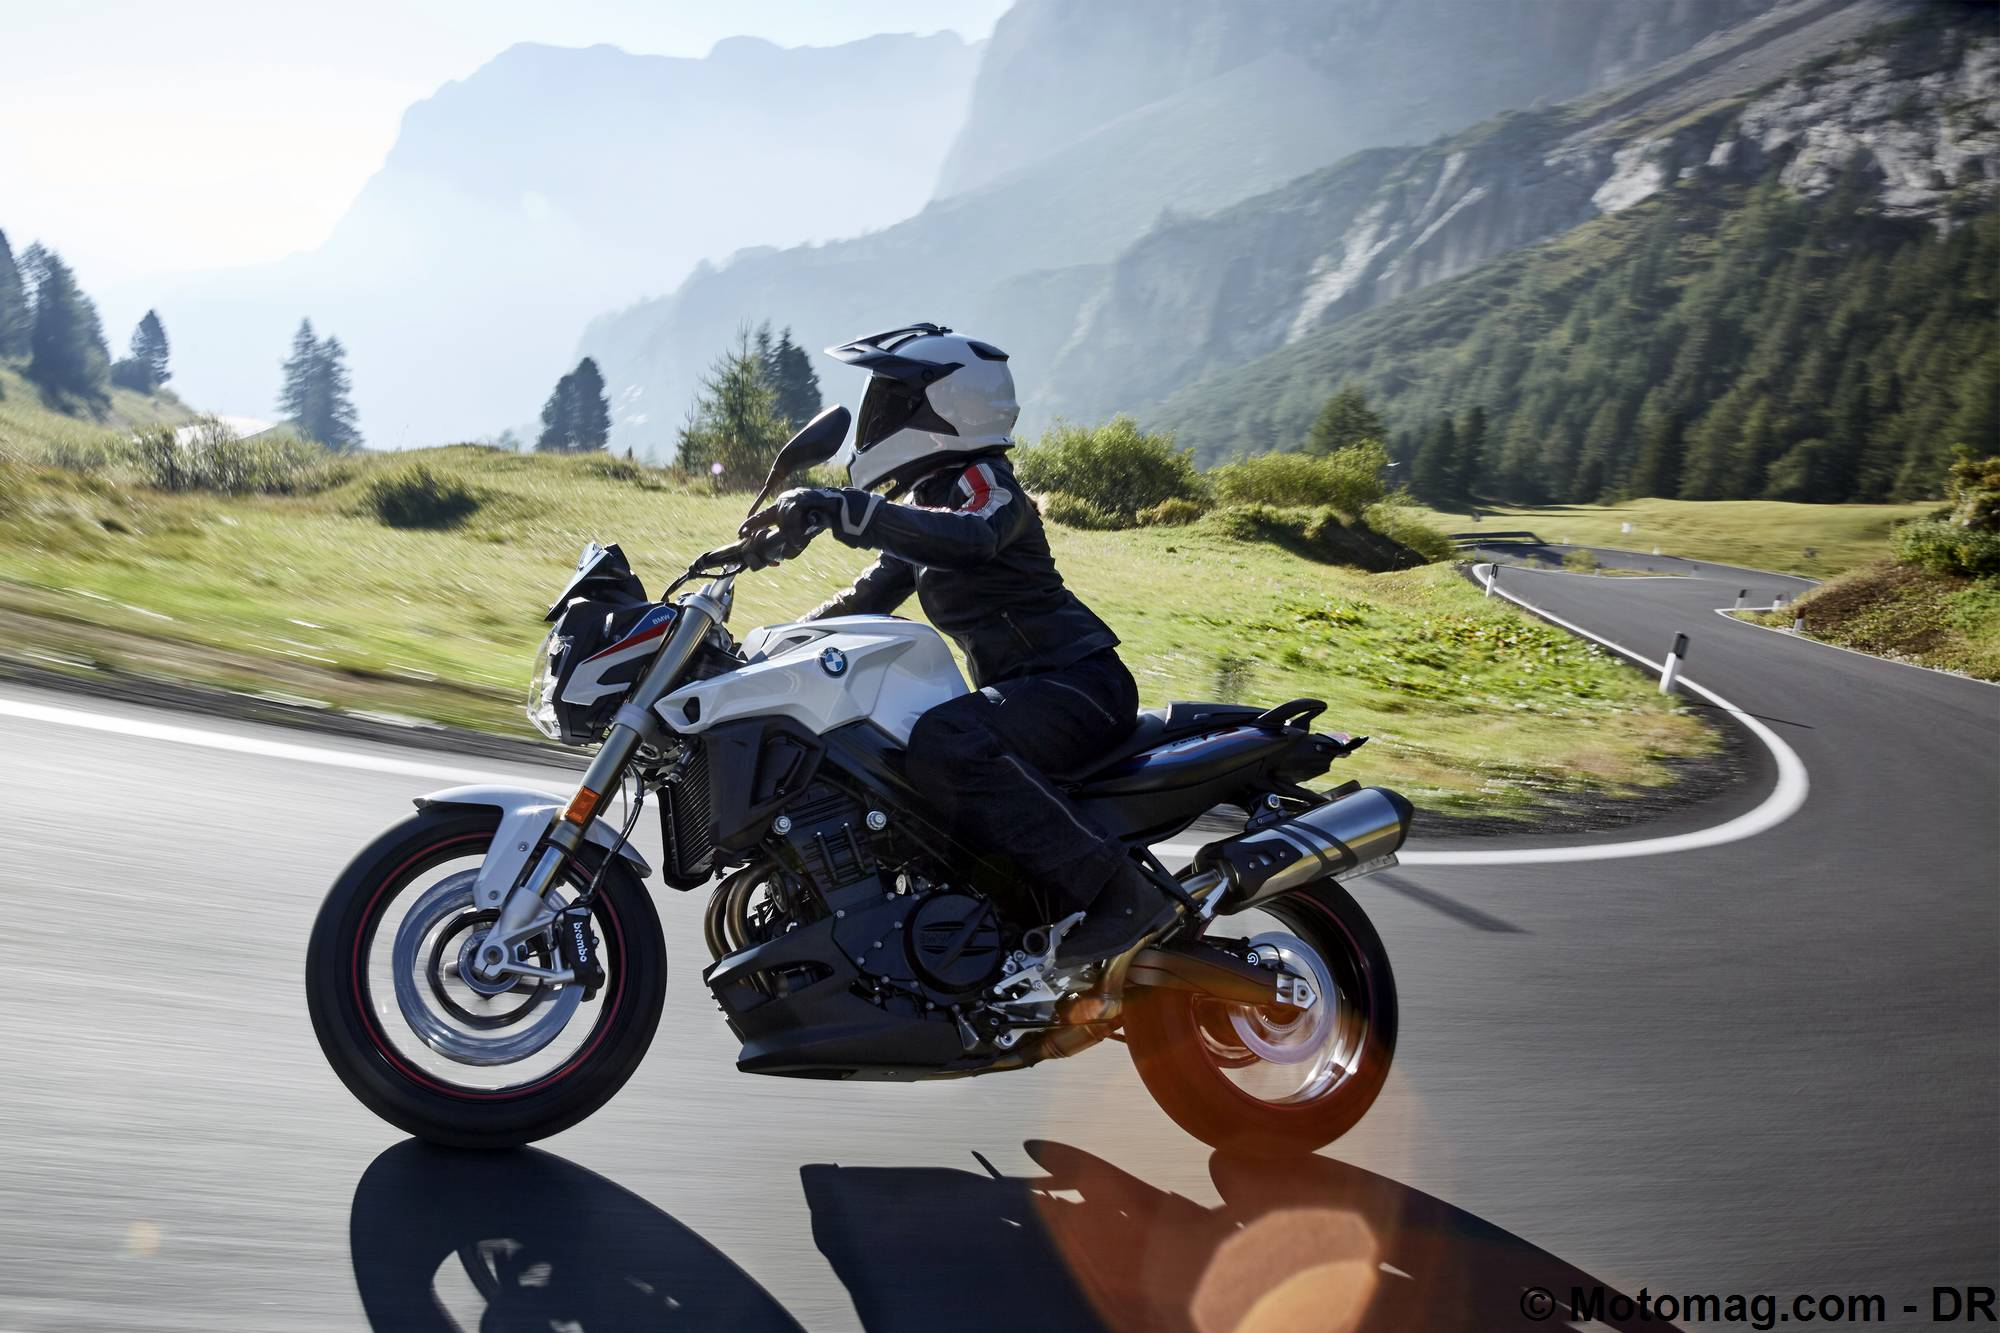 BMW F 800 R 2017, le roadster allemand polyvalent